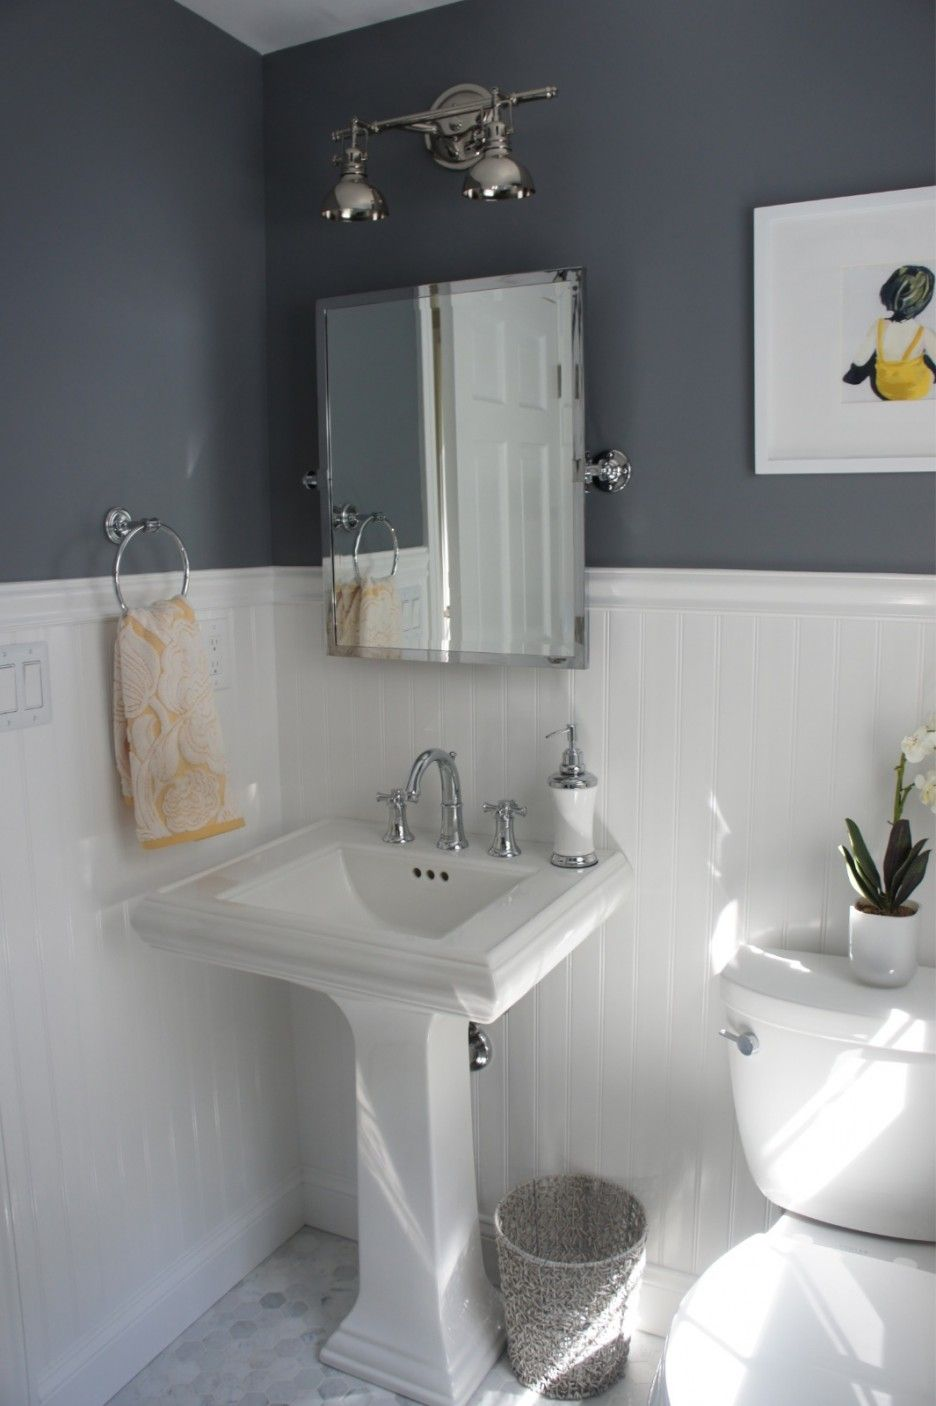 captivating modern bathroom decorating ideas showcasing beadboard style wainscoting bathroom with frameless bathroom mirror above free